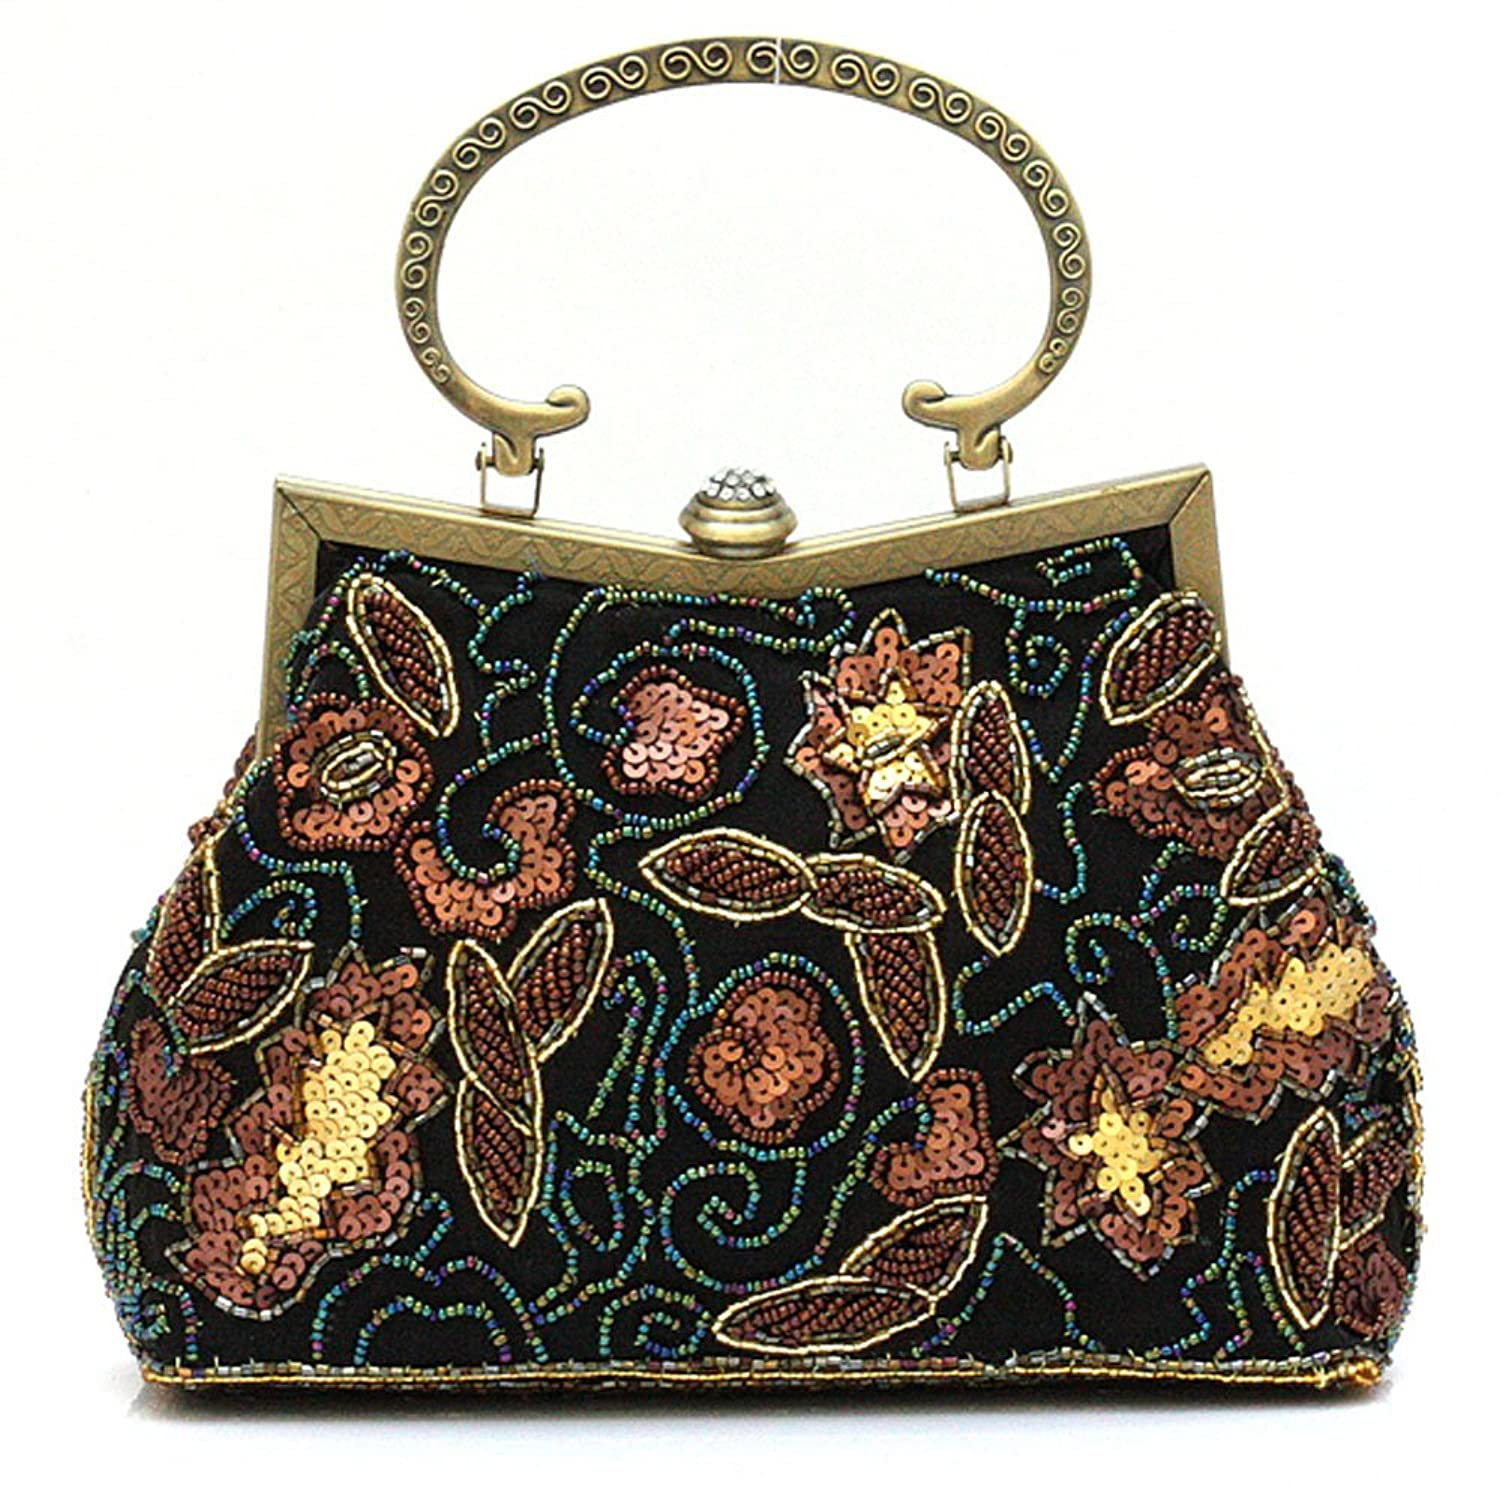 1920s Style Purses, Flapper Bags, Handbags Handmade Beaded Floral Evening Tote Bag Vintage Purse Classic Party Clutch Holiday Gift  AT vintagedancer.com